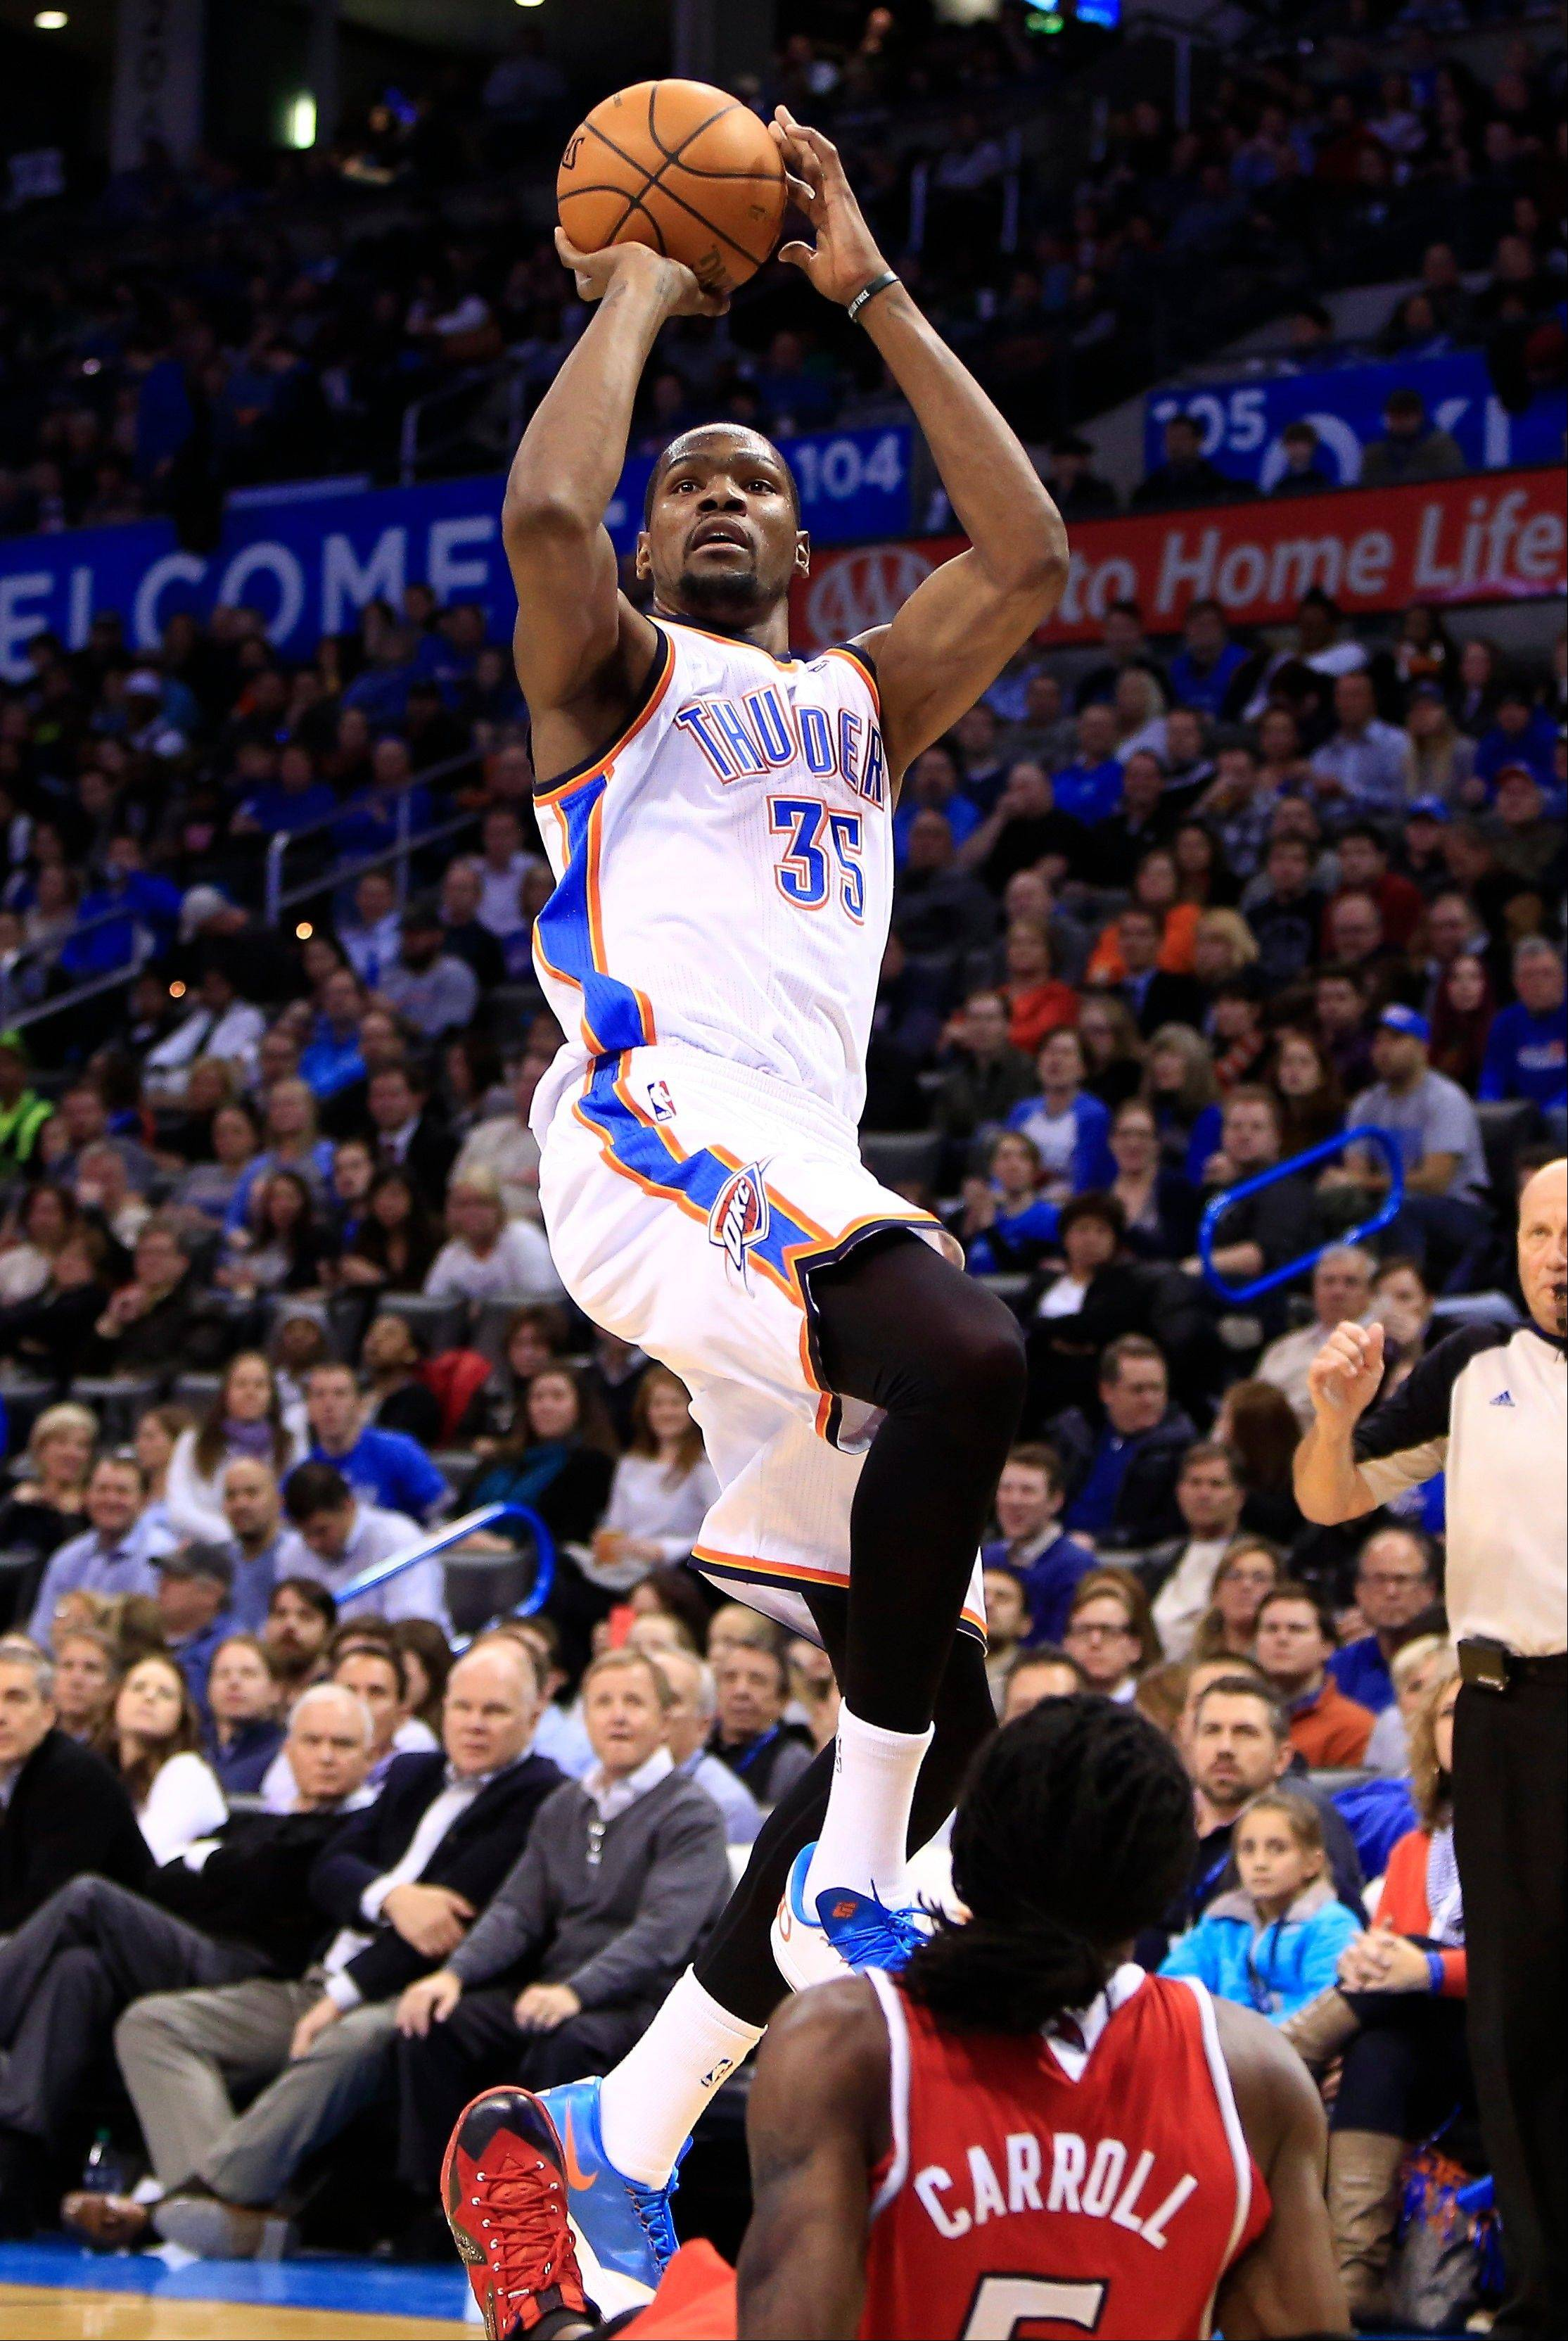 Oklahoma City Thunder forward Kevin Durant (35) shoots over Atlanta Hawks forward DeMarre Carroll during the fourth quarter of an NBA basketball game Monday in Oklahoma City. Oklahoma City won 111-109.